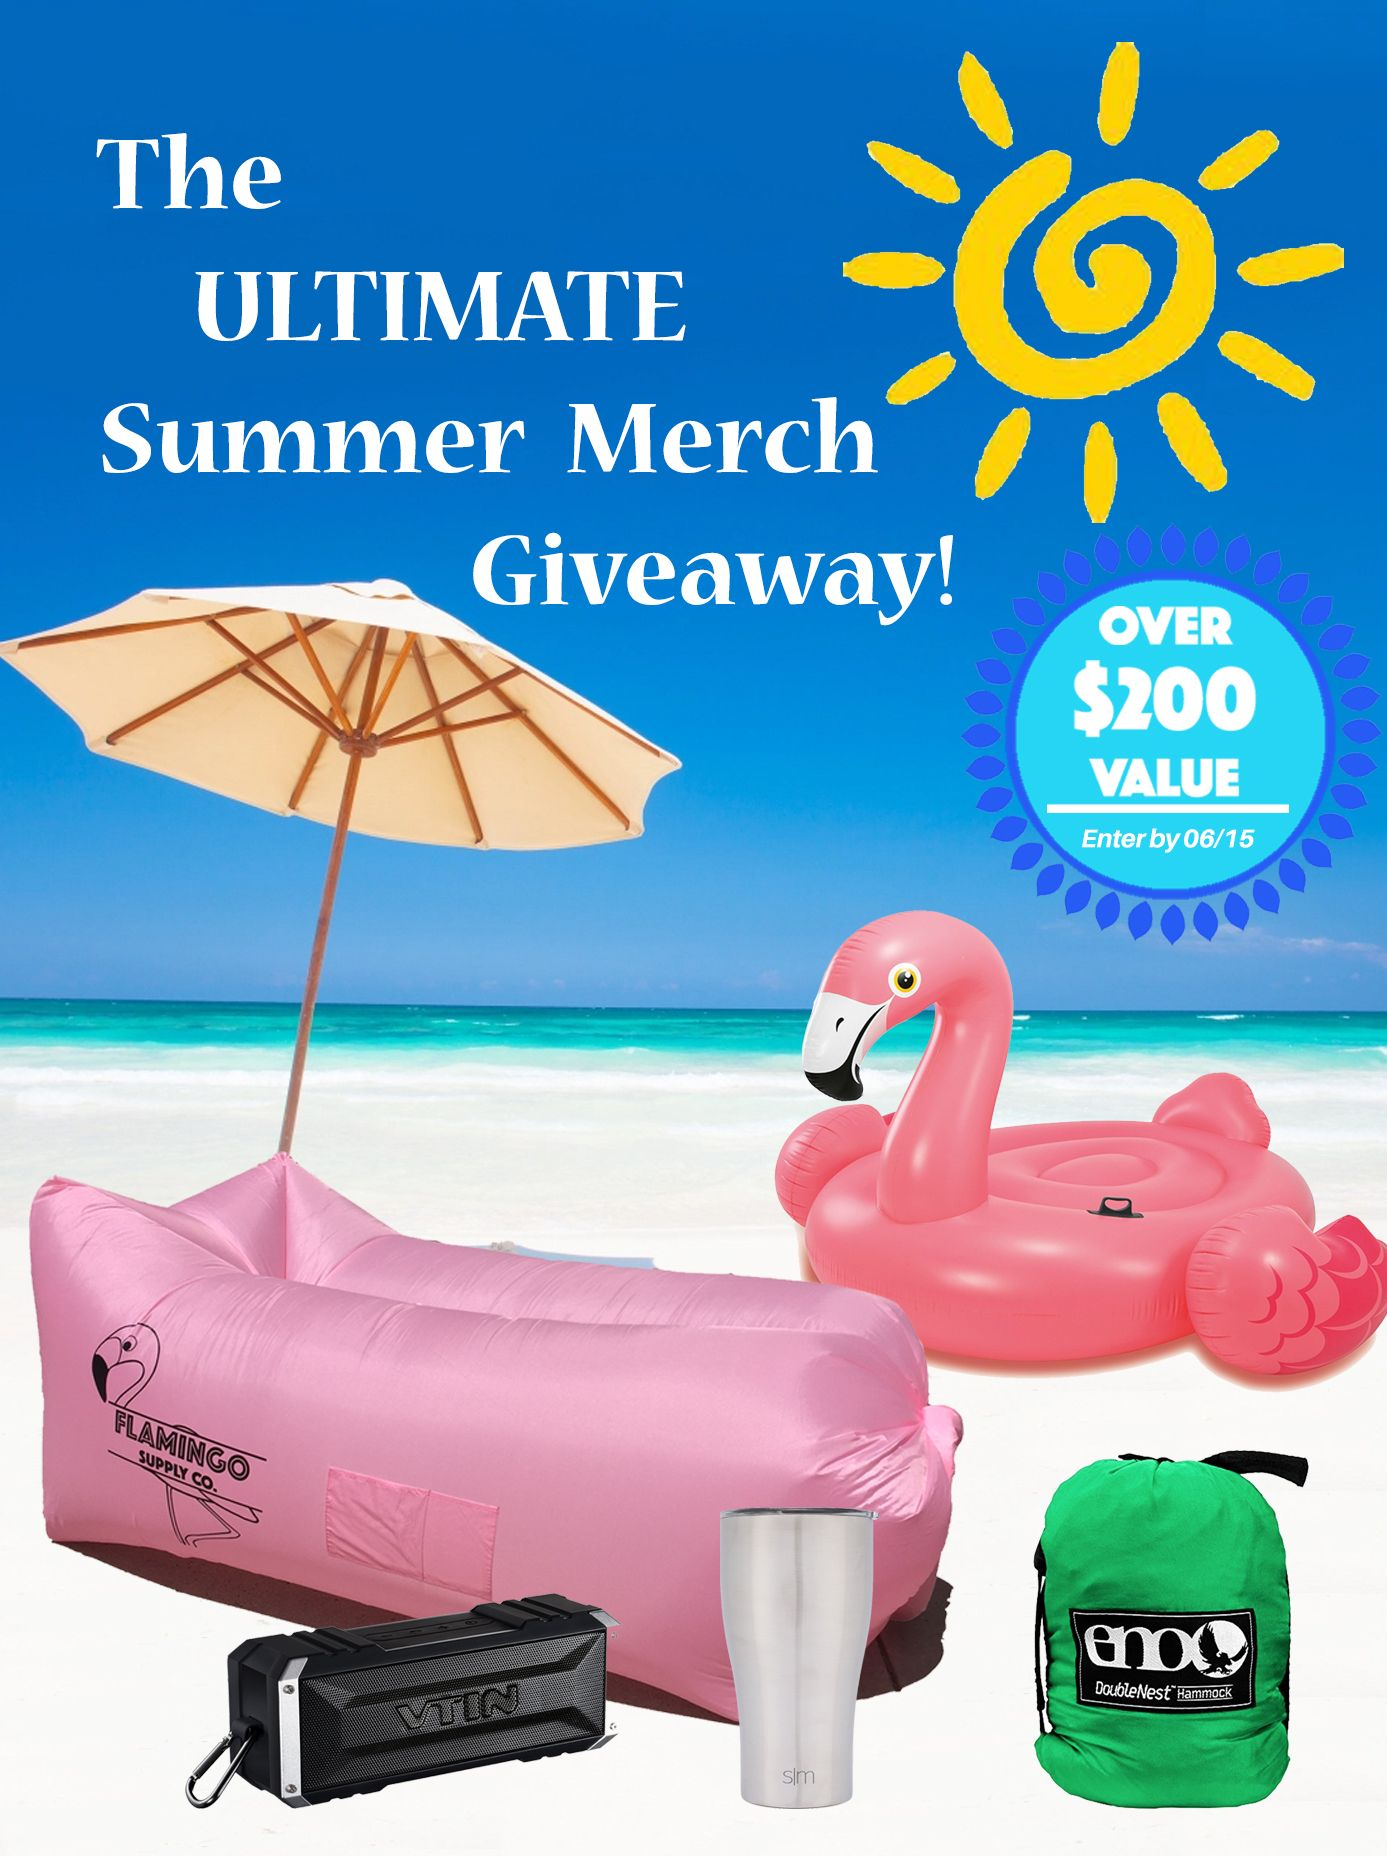 Summer giveaway free win giveaway contest sweepstakes